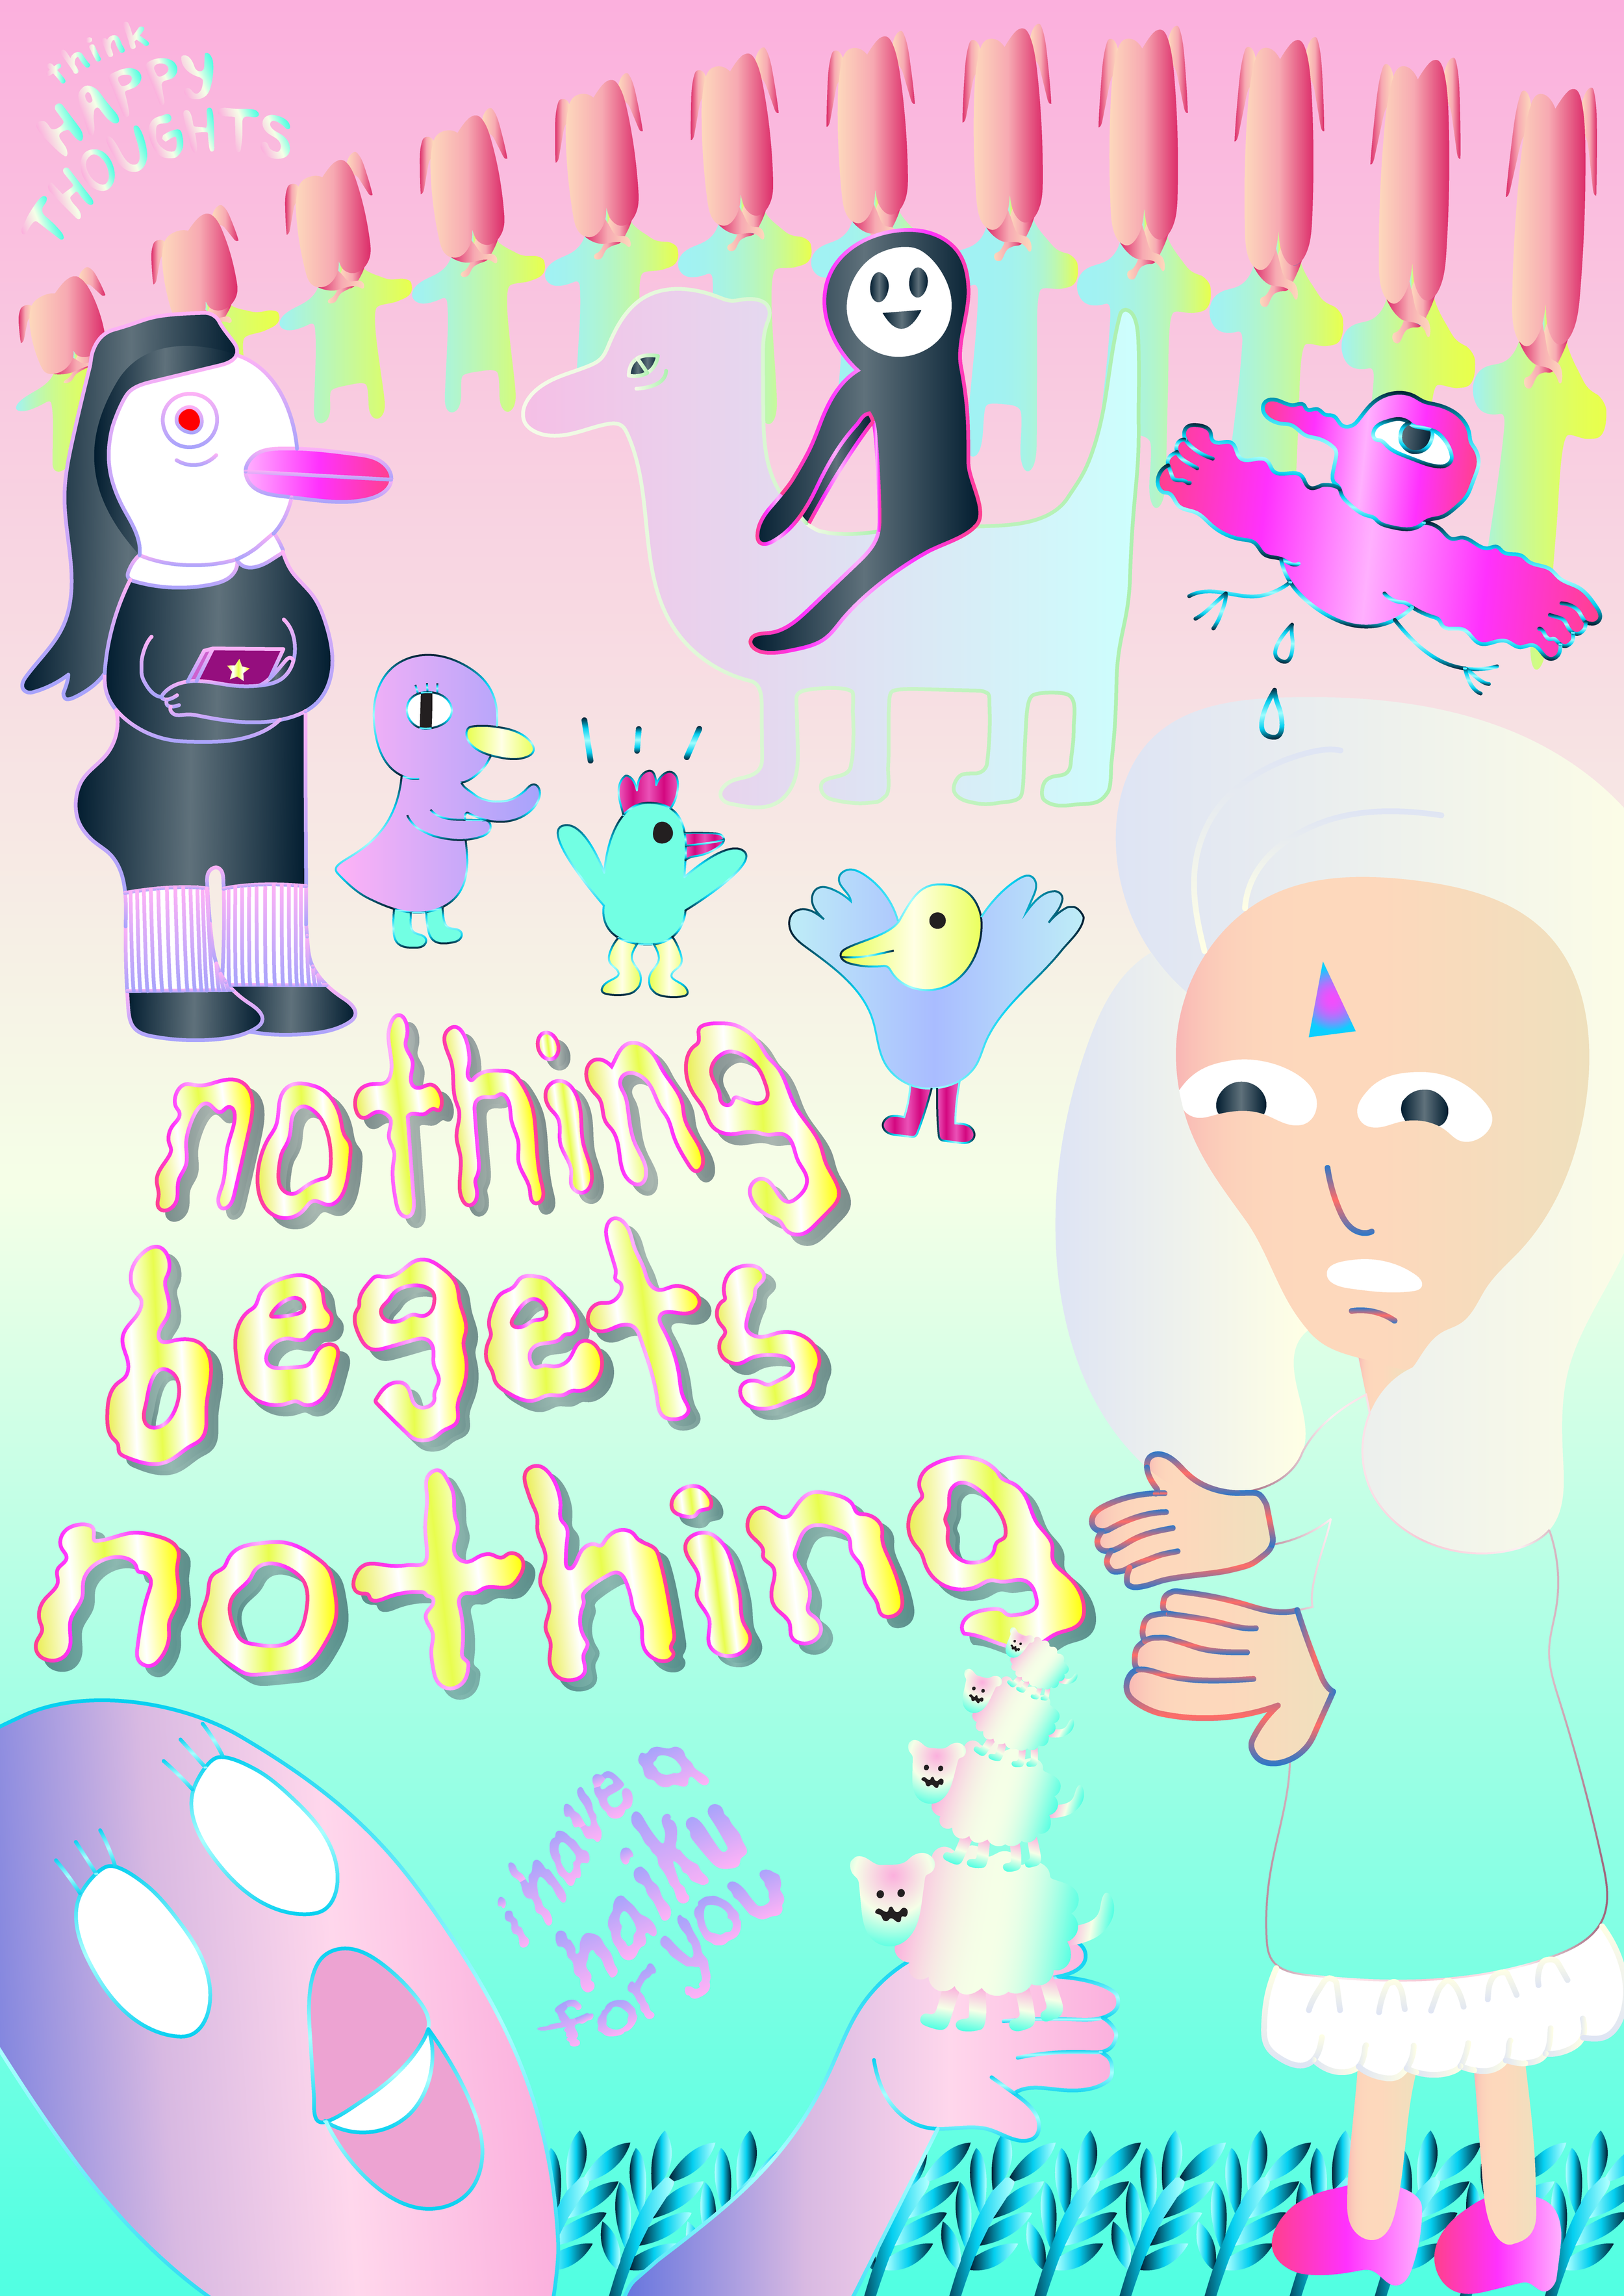 nothing begets nothing